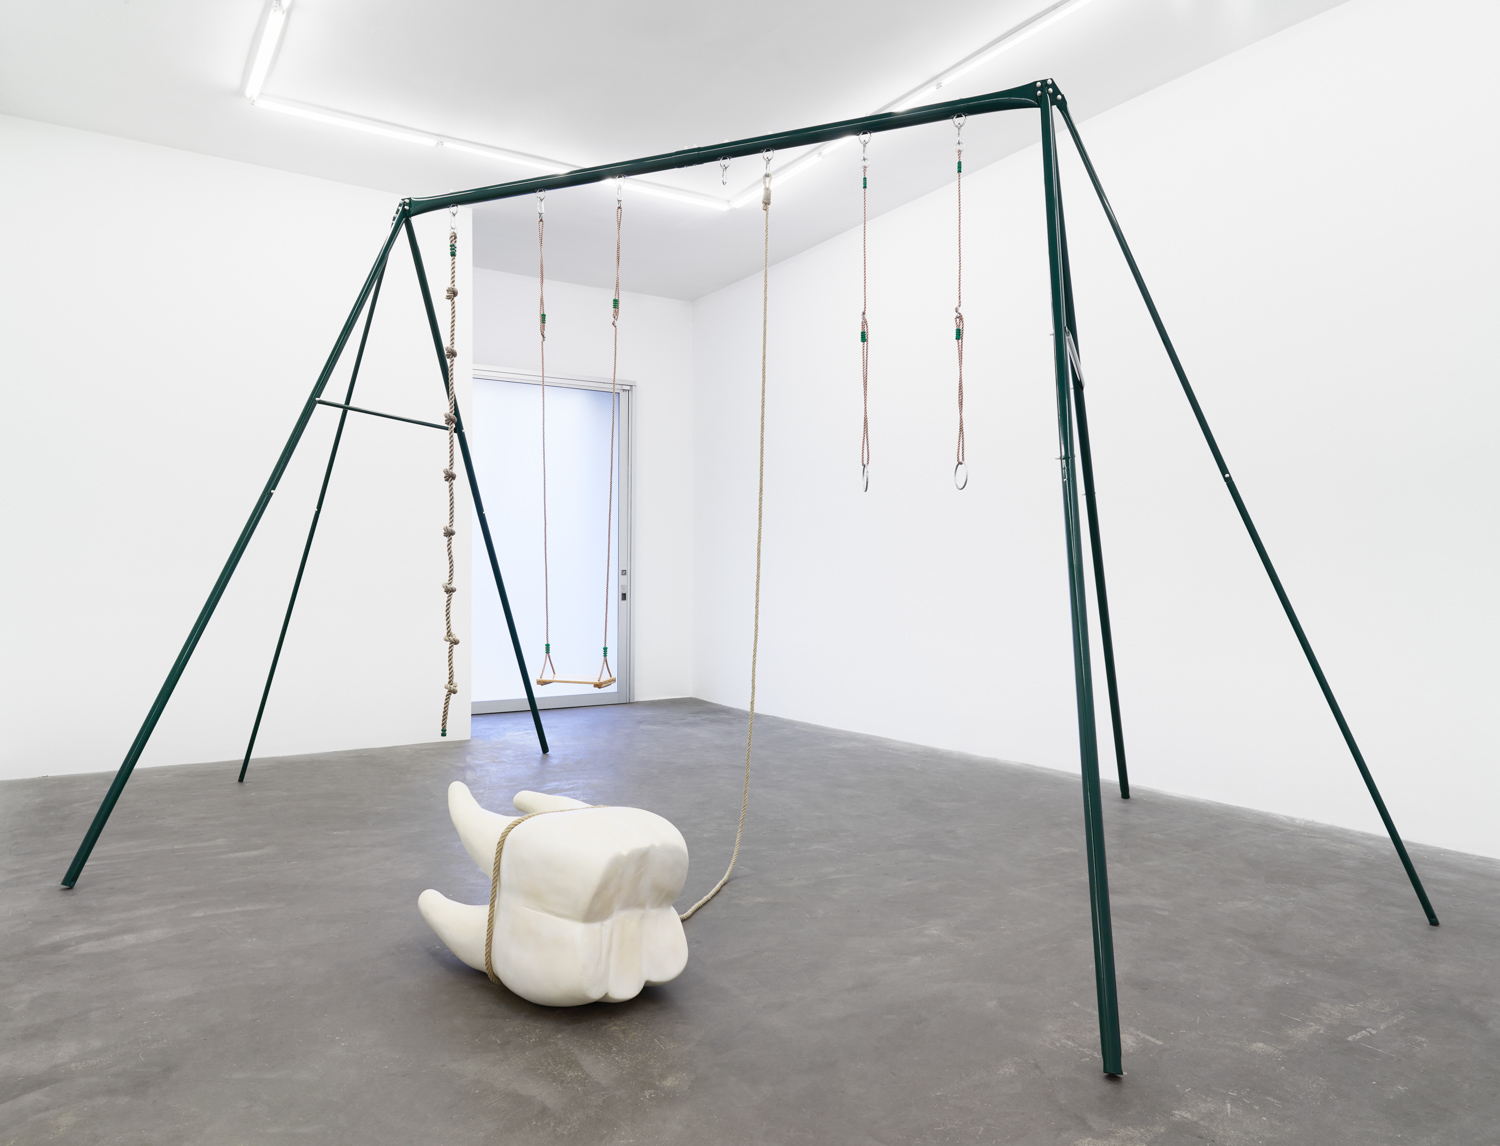 Ohlala , 2013  playground swing set, tooth sculpture  450 x 350 x 600 cm - 177 5/32 x 137 25/32 x 236 7/32 in